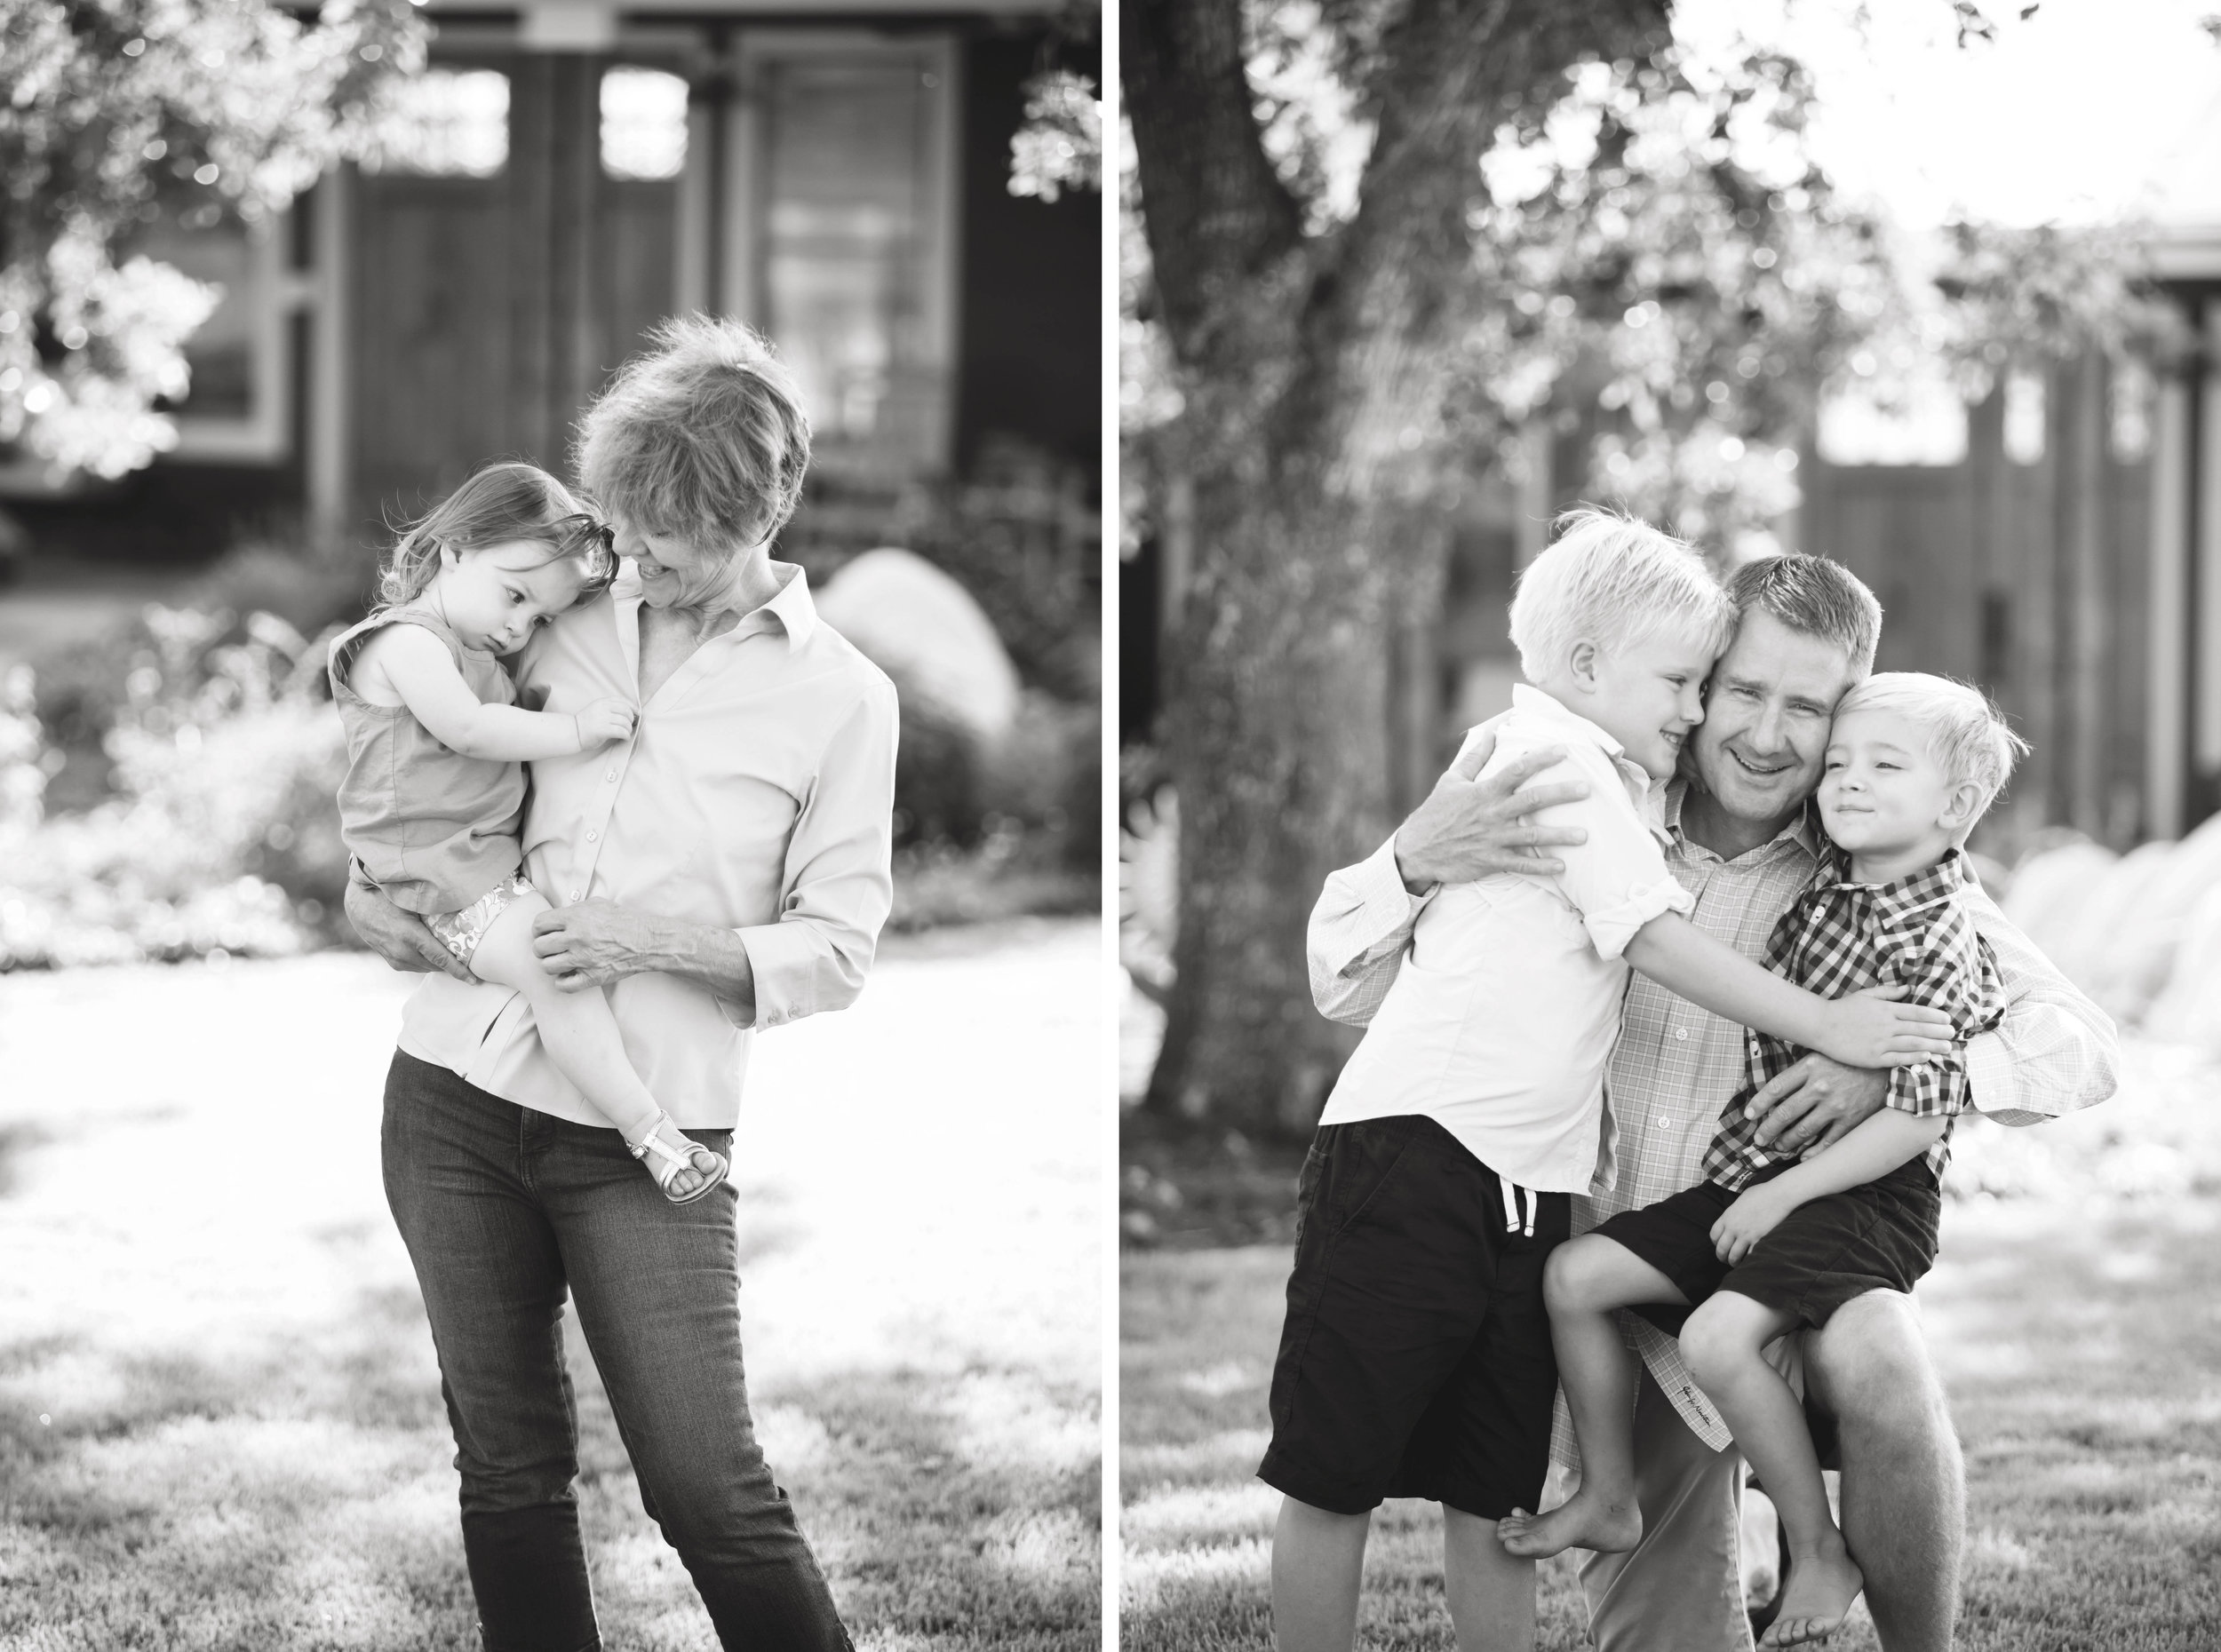 Marble_Falls_Family_Photographer_Farm_Jenna_Petty_15.jpg